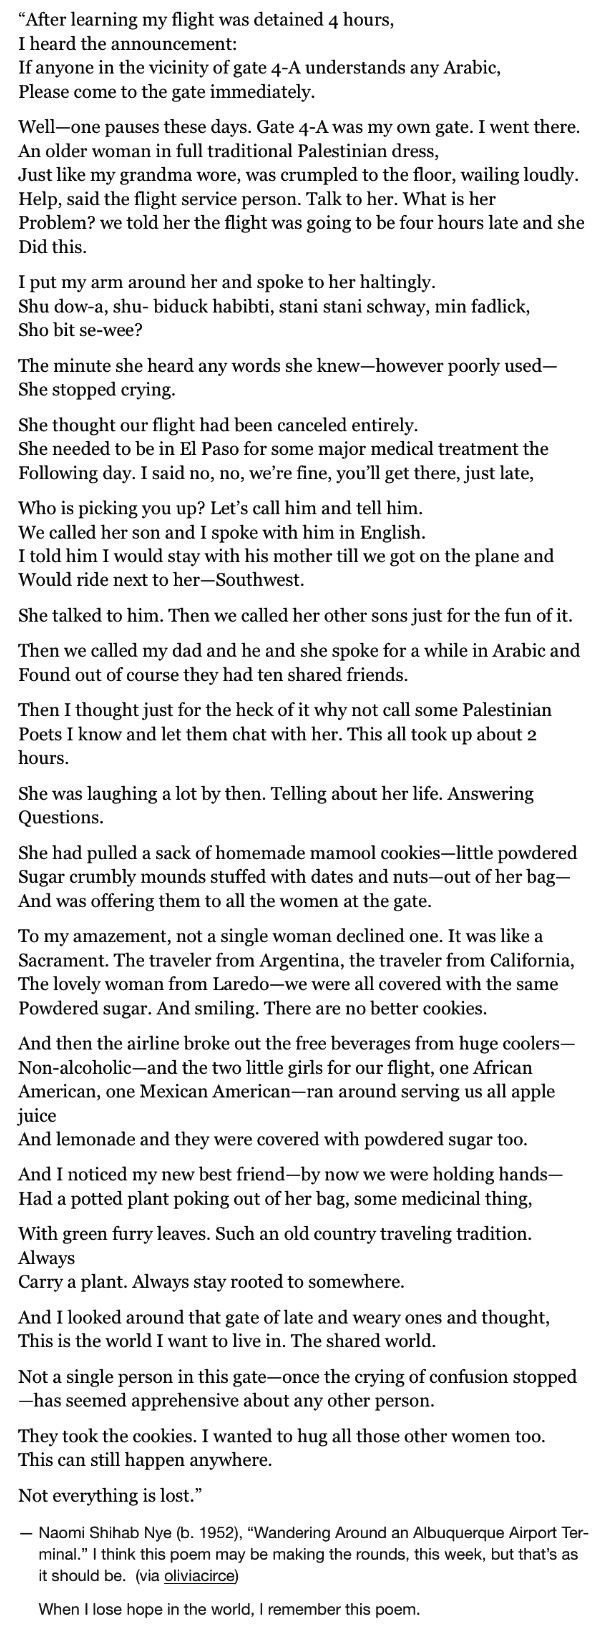 poem analysis by naomi shihab nye Naomi shihab nye (arabic: نعومي شهاب ناي  ), (born march 12, 1952) is a poet,  songwriter, and  her first collection of poems, different ways to pray, explored  the theme of similarities and differences between cultures, which would become  one.